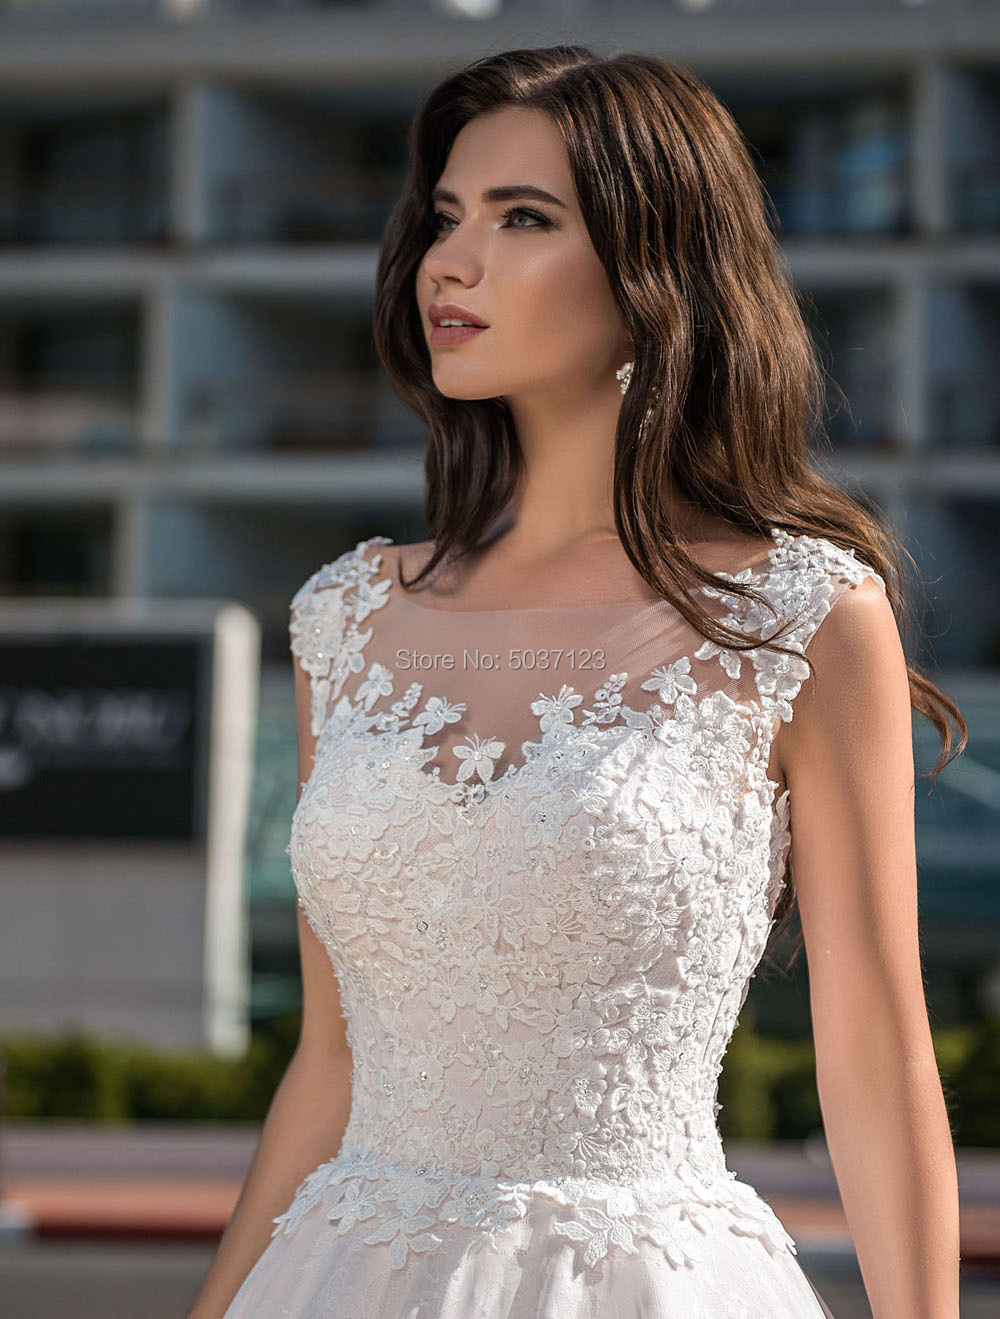 Image 3 - Light Pink Wedding Dresses 2019 Lace Appliques Sleeveless Bridal Gowns A Line Illusion Court Train Vestido De Noiva Plus Size-in Wedding Dresses from Weddings & Events